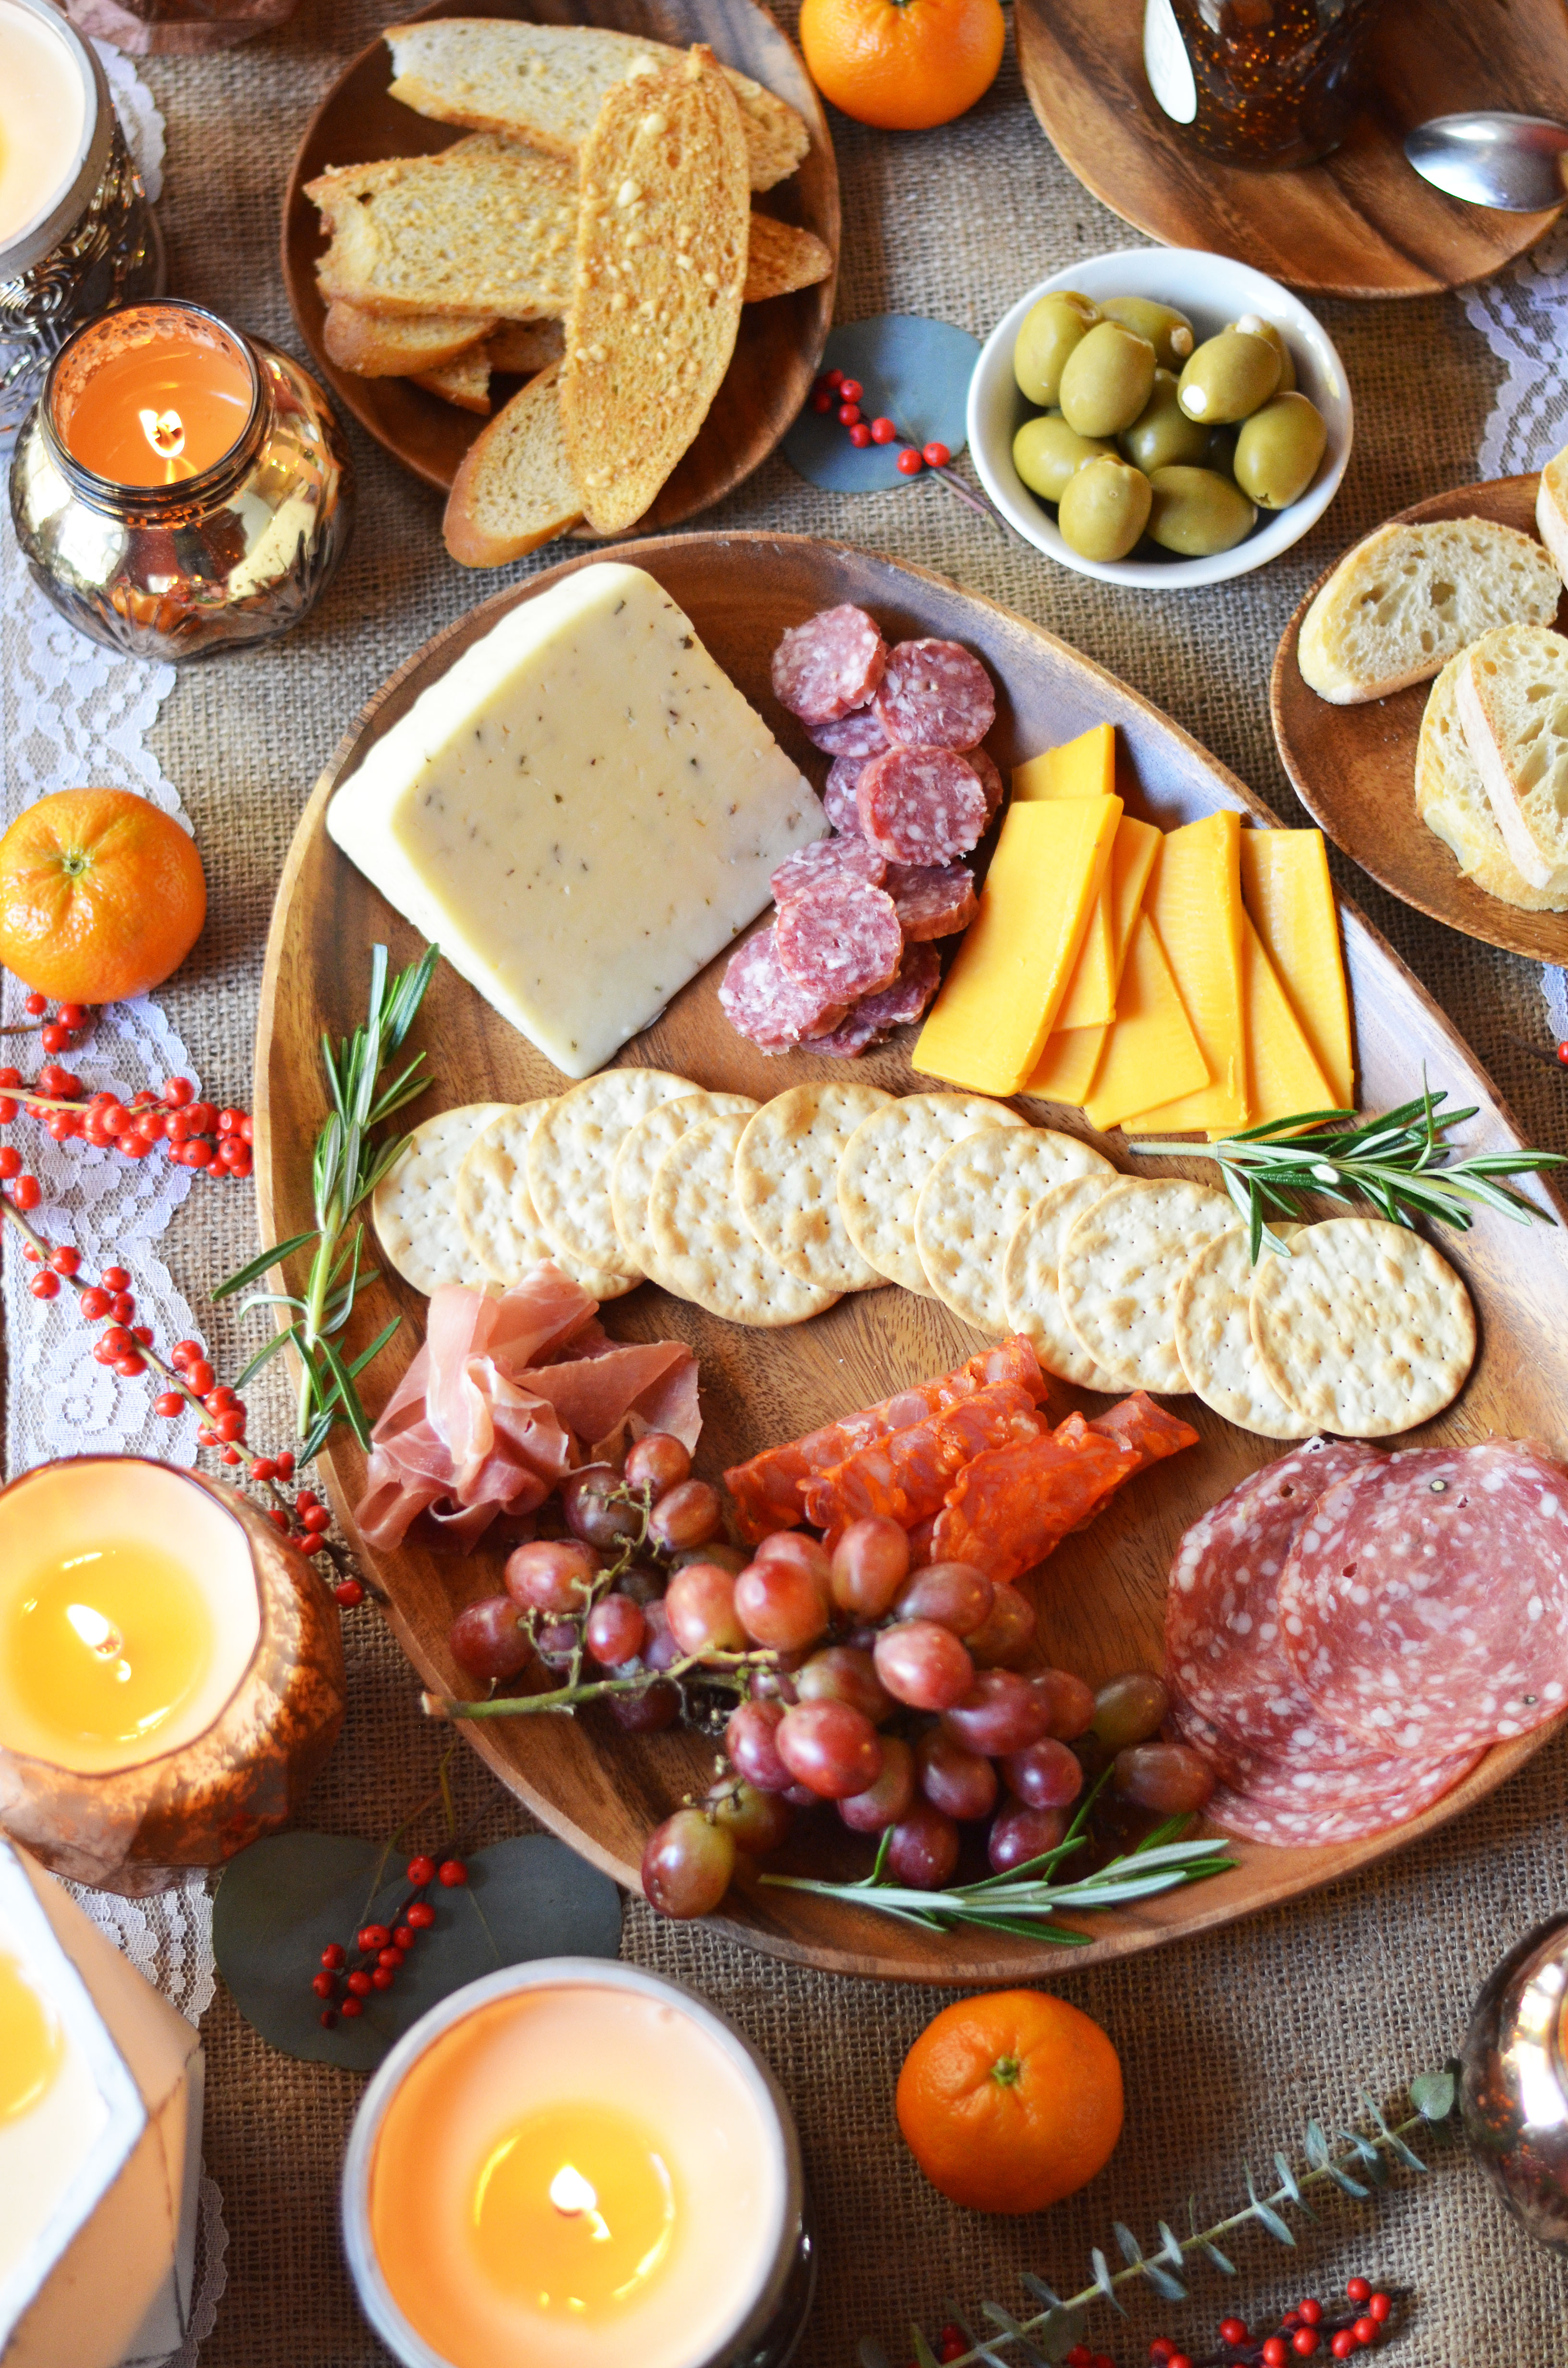 perfect charcuterie board for entertaining - diy charcuterie board | www.bylaurenm.com